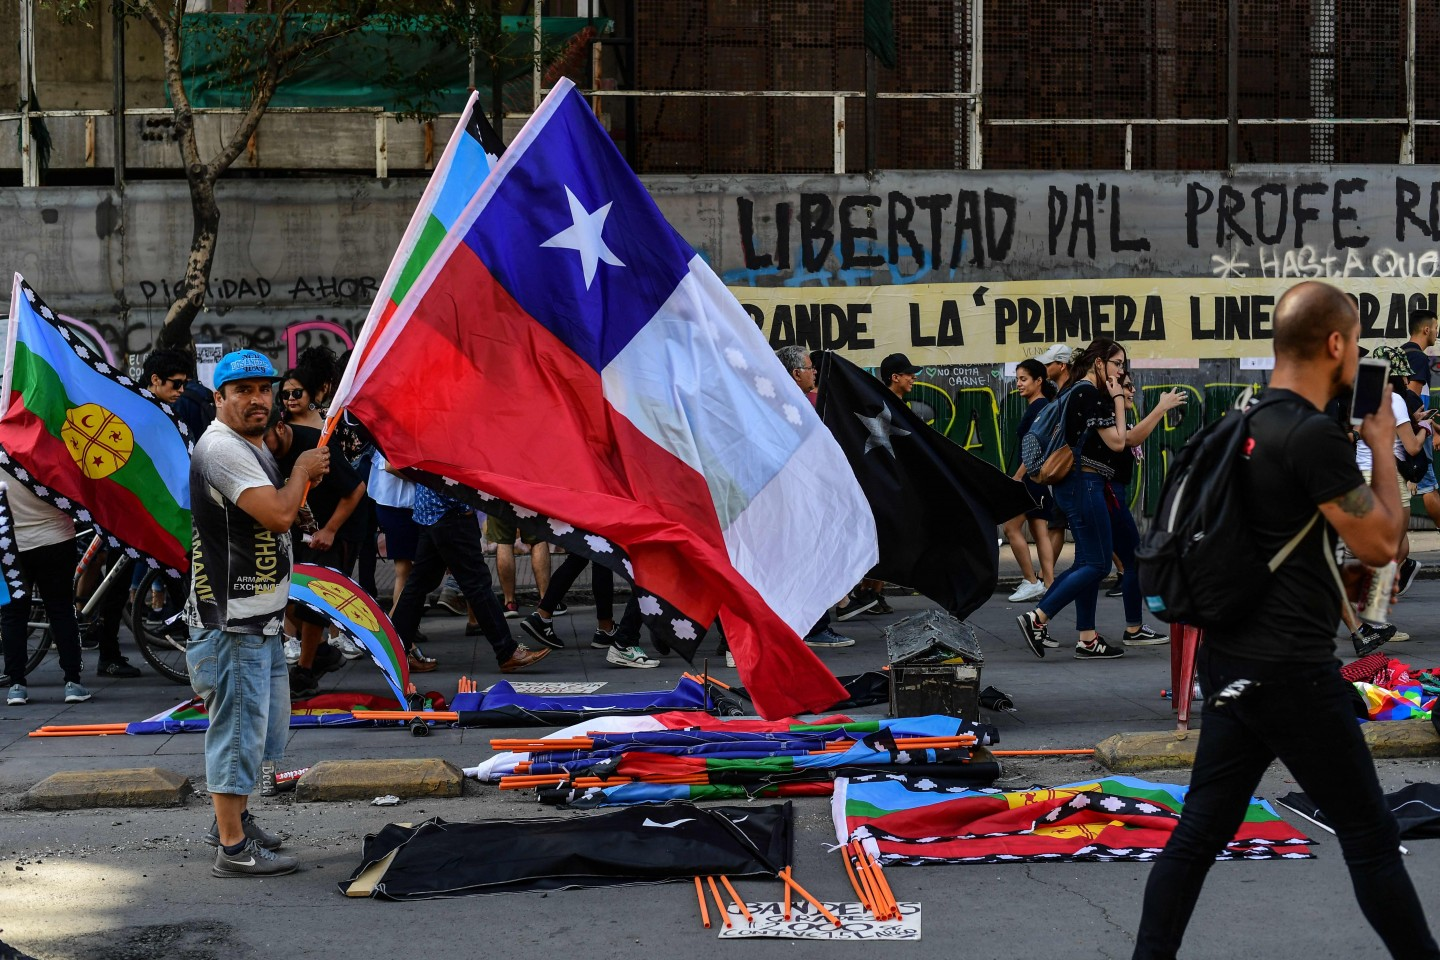 Artists sell merchandise making reference to the social crisis going on in Chile, near Plaza Italia square, site of protests and clashes in Santiago, on November 22, 2019. Since October 18, furious Chileans have been protesting social and economic inequality, and against an entrenched political elite that comes from a small number of the wealthiest families in the country, among other issues. (Photo by Martin Bernetti/AFP)